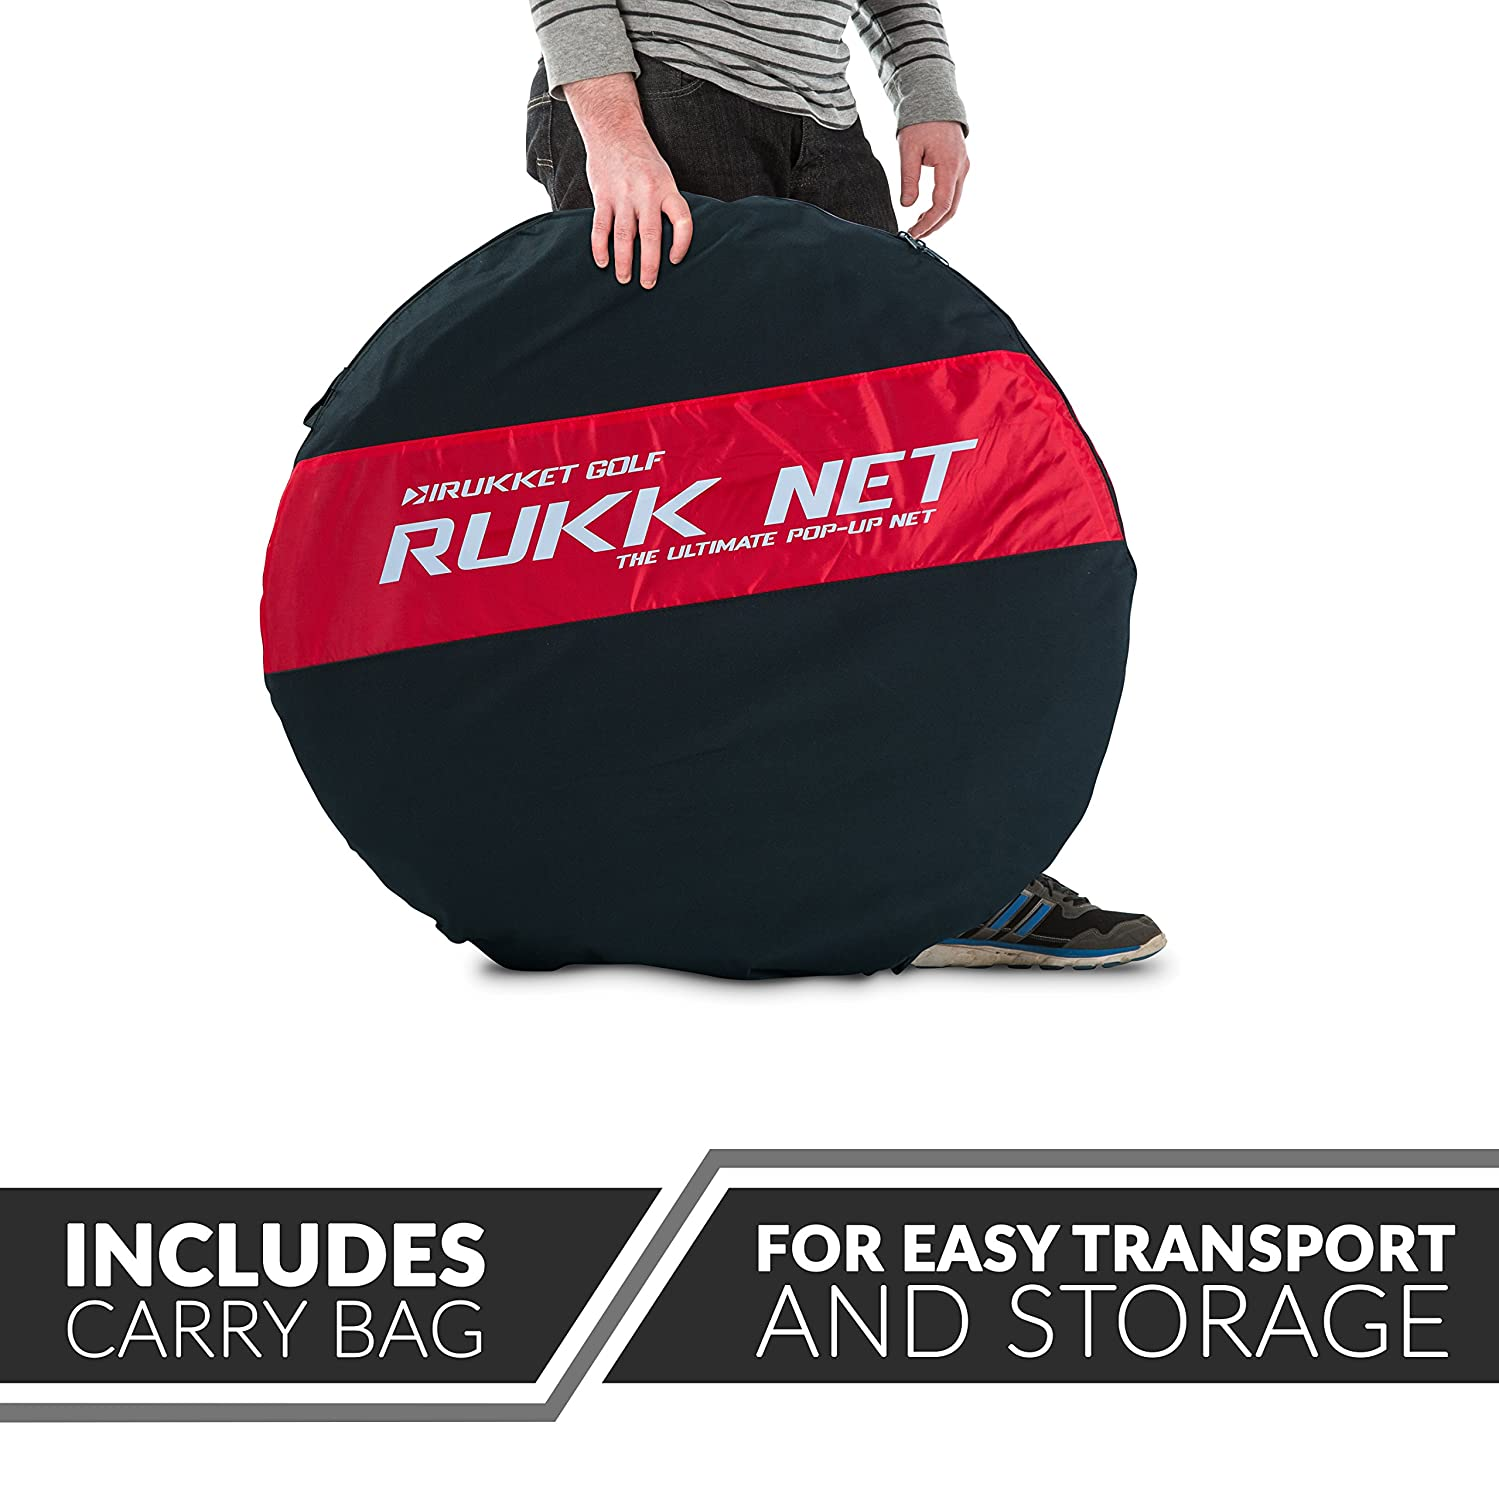 amazon com rukket 10x7ft pop up golf net orginal rukknet